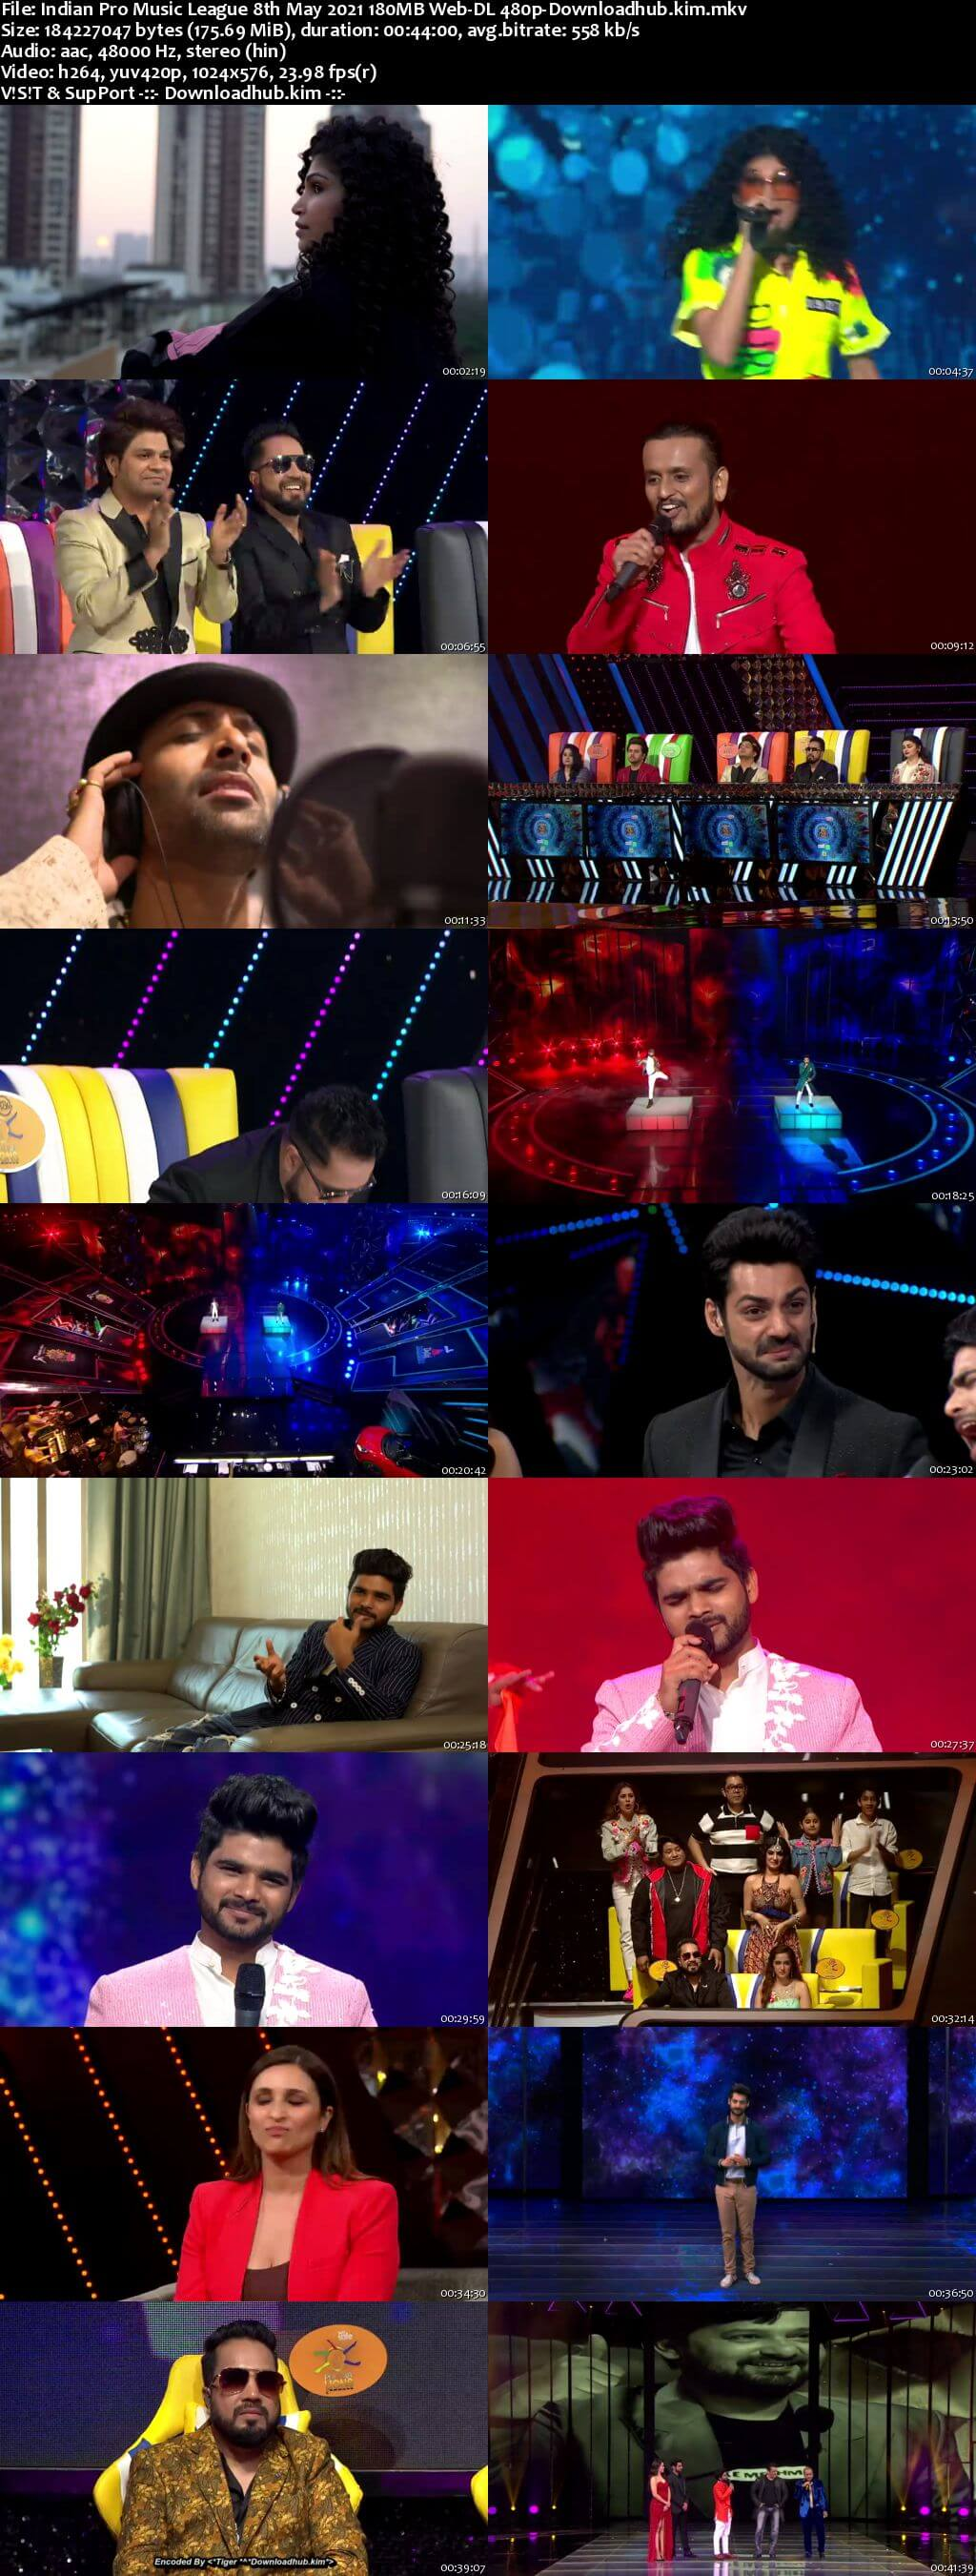 Indian Pro Music League 8th May 2021 180MB Web-DL 480p